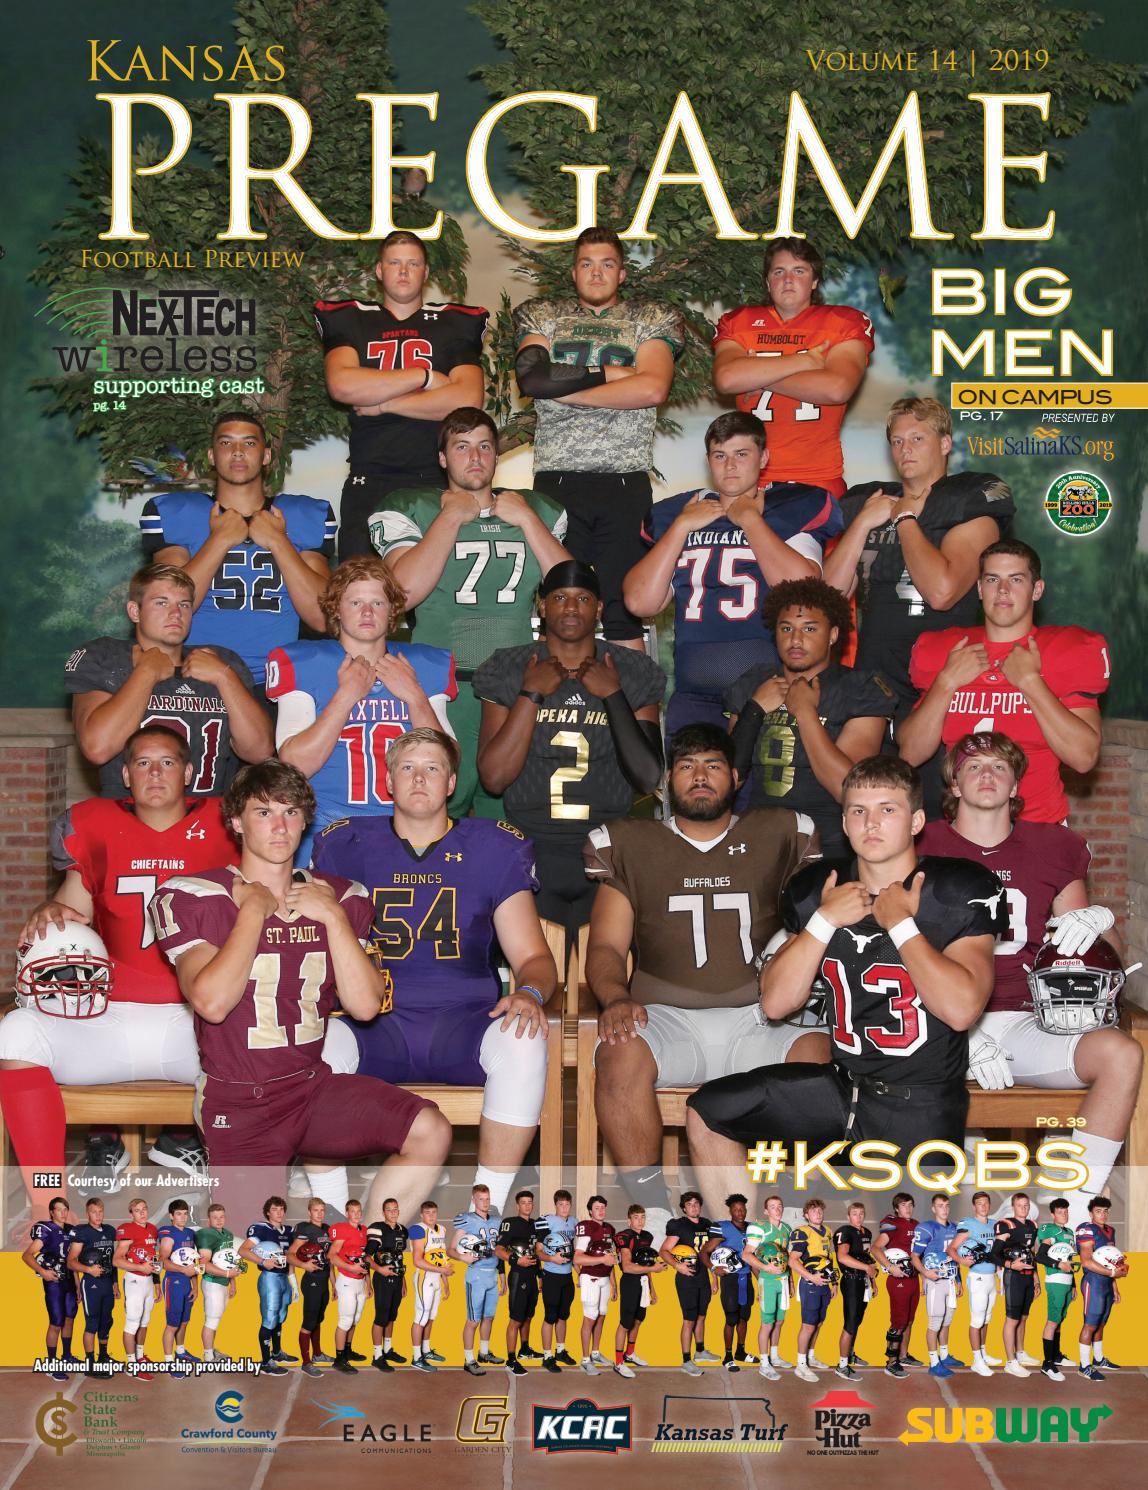 Kansas Pregame Football Preview 2019 By Sixteen 60 Publishing Co Issuu